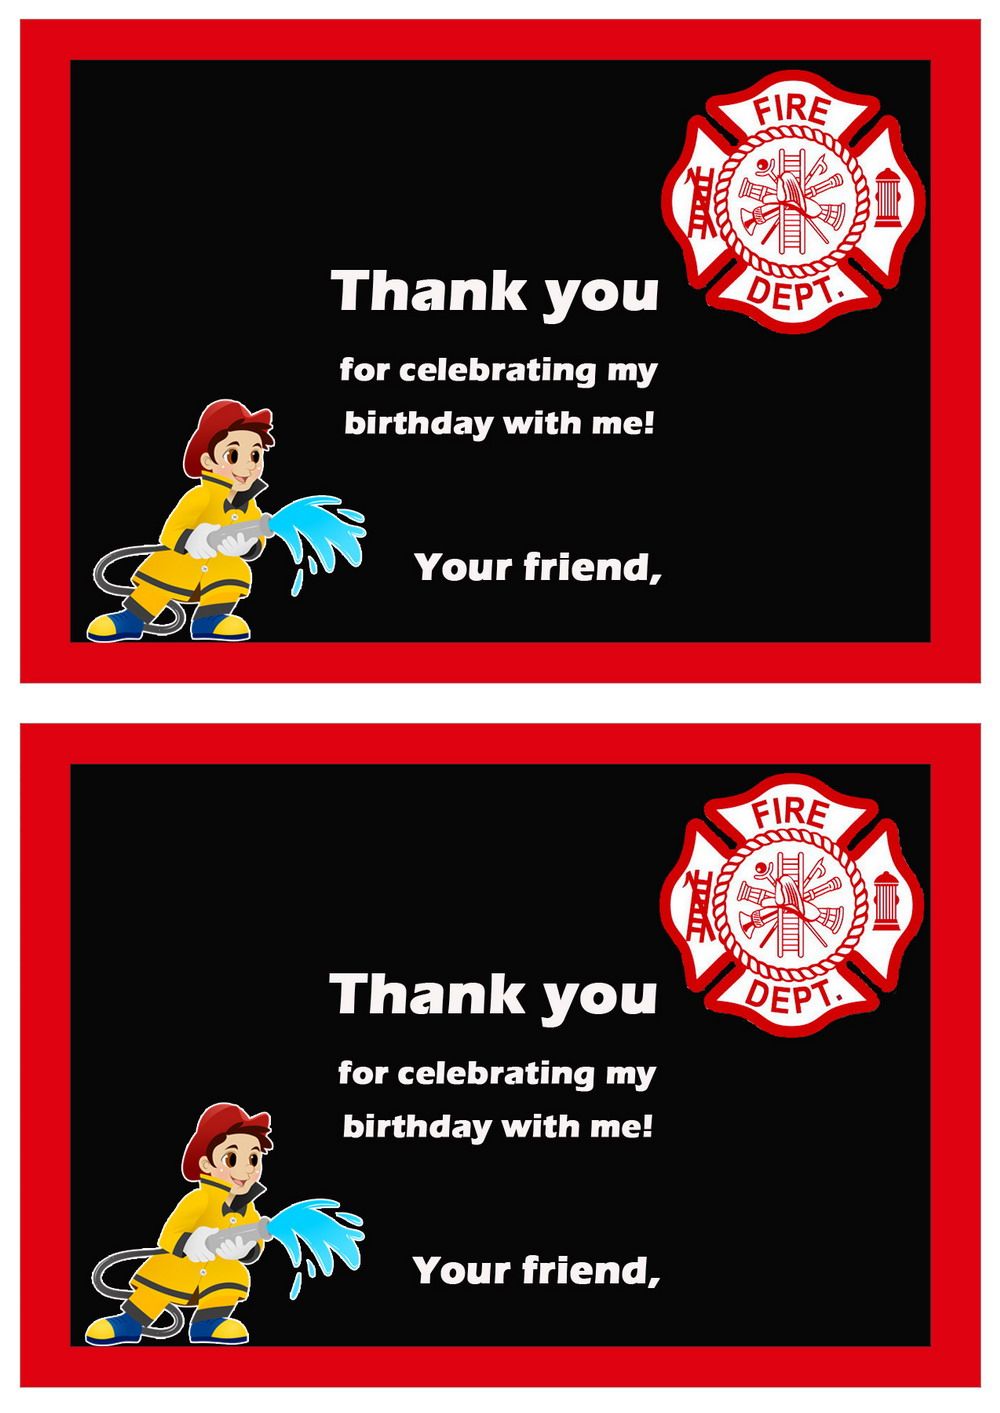 Firefighters Thank you Cards